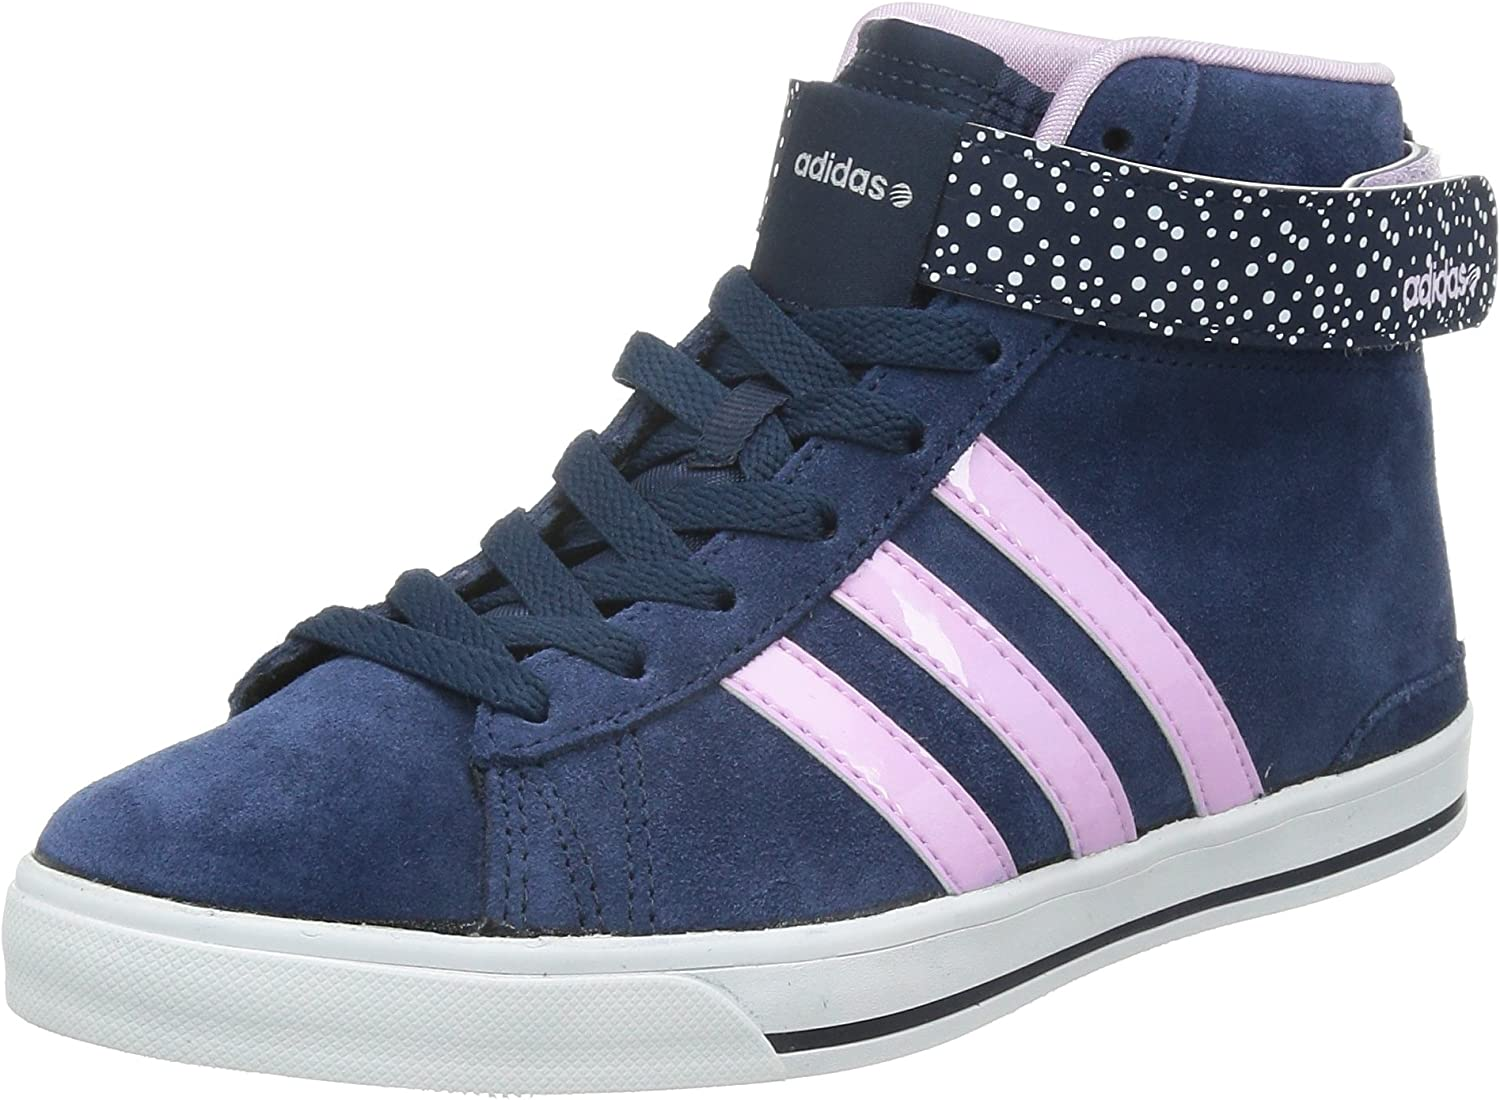 adidas Womens Neo Daily Twist Mid Trainers in Navy